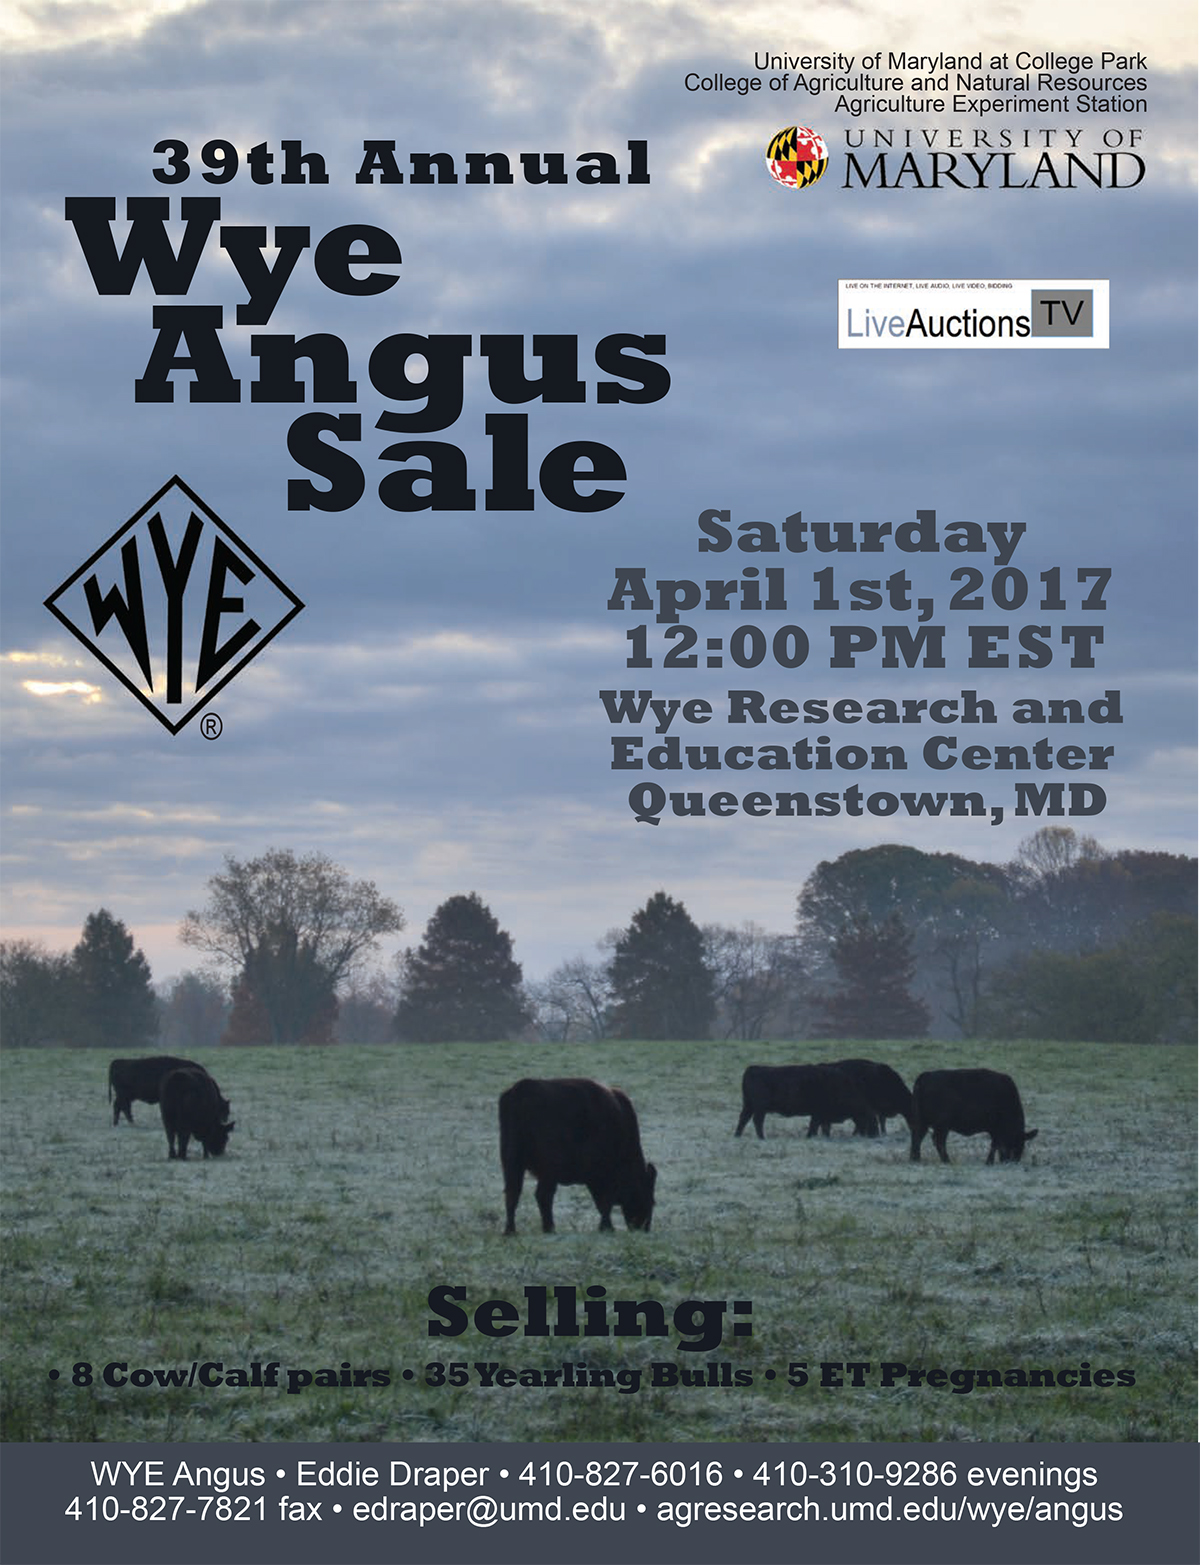 39th Annual Wye Angus Sale